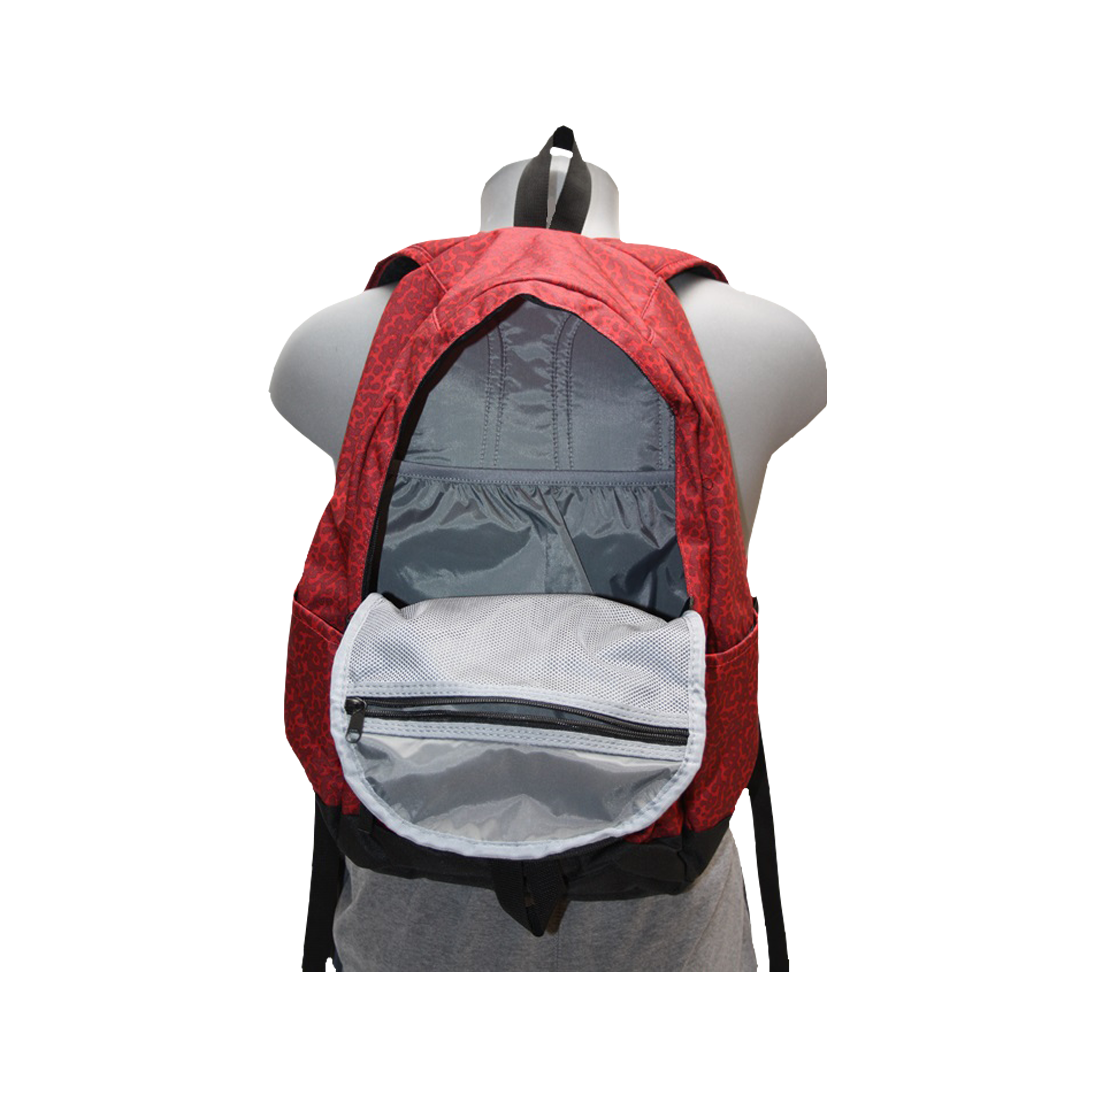 Sac a dos sport camouflage rouge nike 5